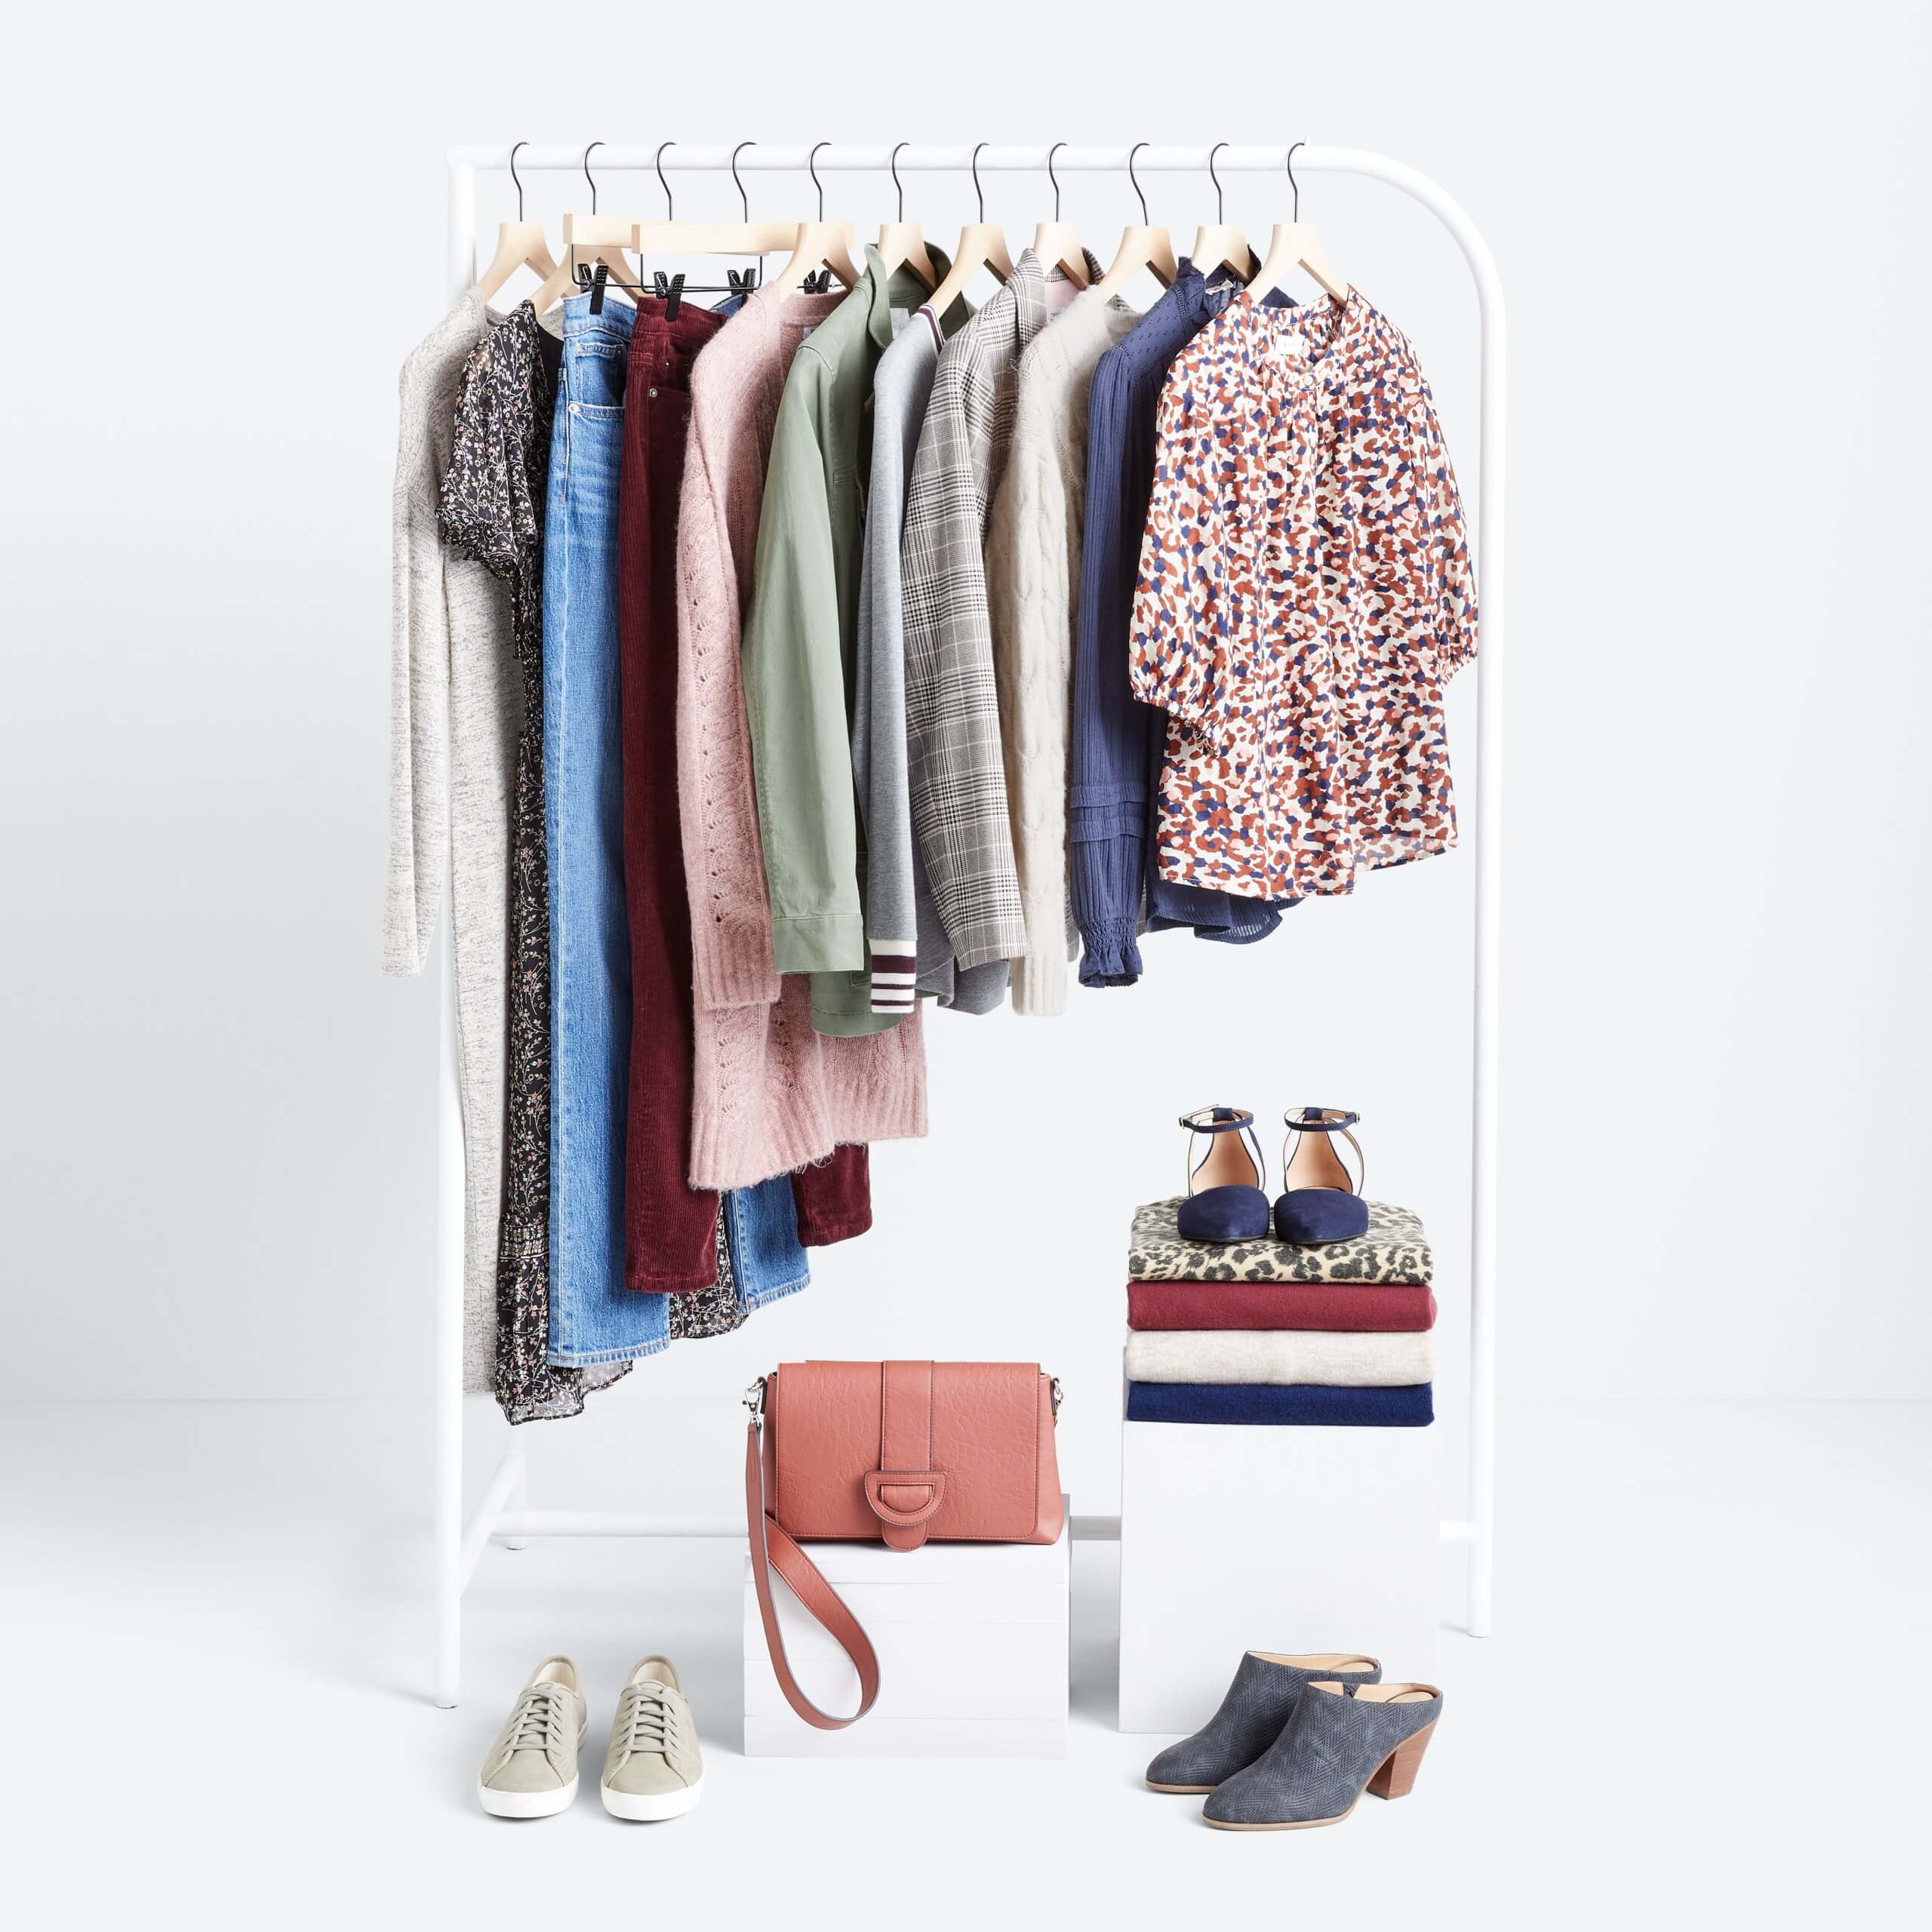 Stitch Fix Women's rack image featuring red, wnite and blue printed blouse, navy blouse, cream pullover, plaid blazer, grey pullover, green jacket, pink cardigan, burgundy jeans, blue jeans and black printed dress hanging on white rack with tan sneakers and navy mules on the floor, next to pink bag and folded shirts in navy, tan and burgundy,  with animal-print flats on white block.